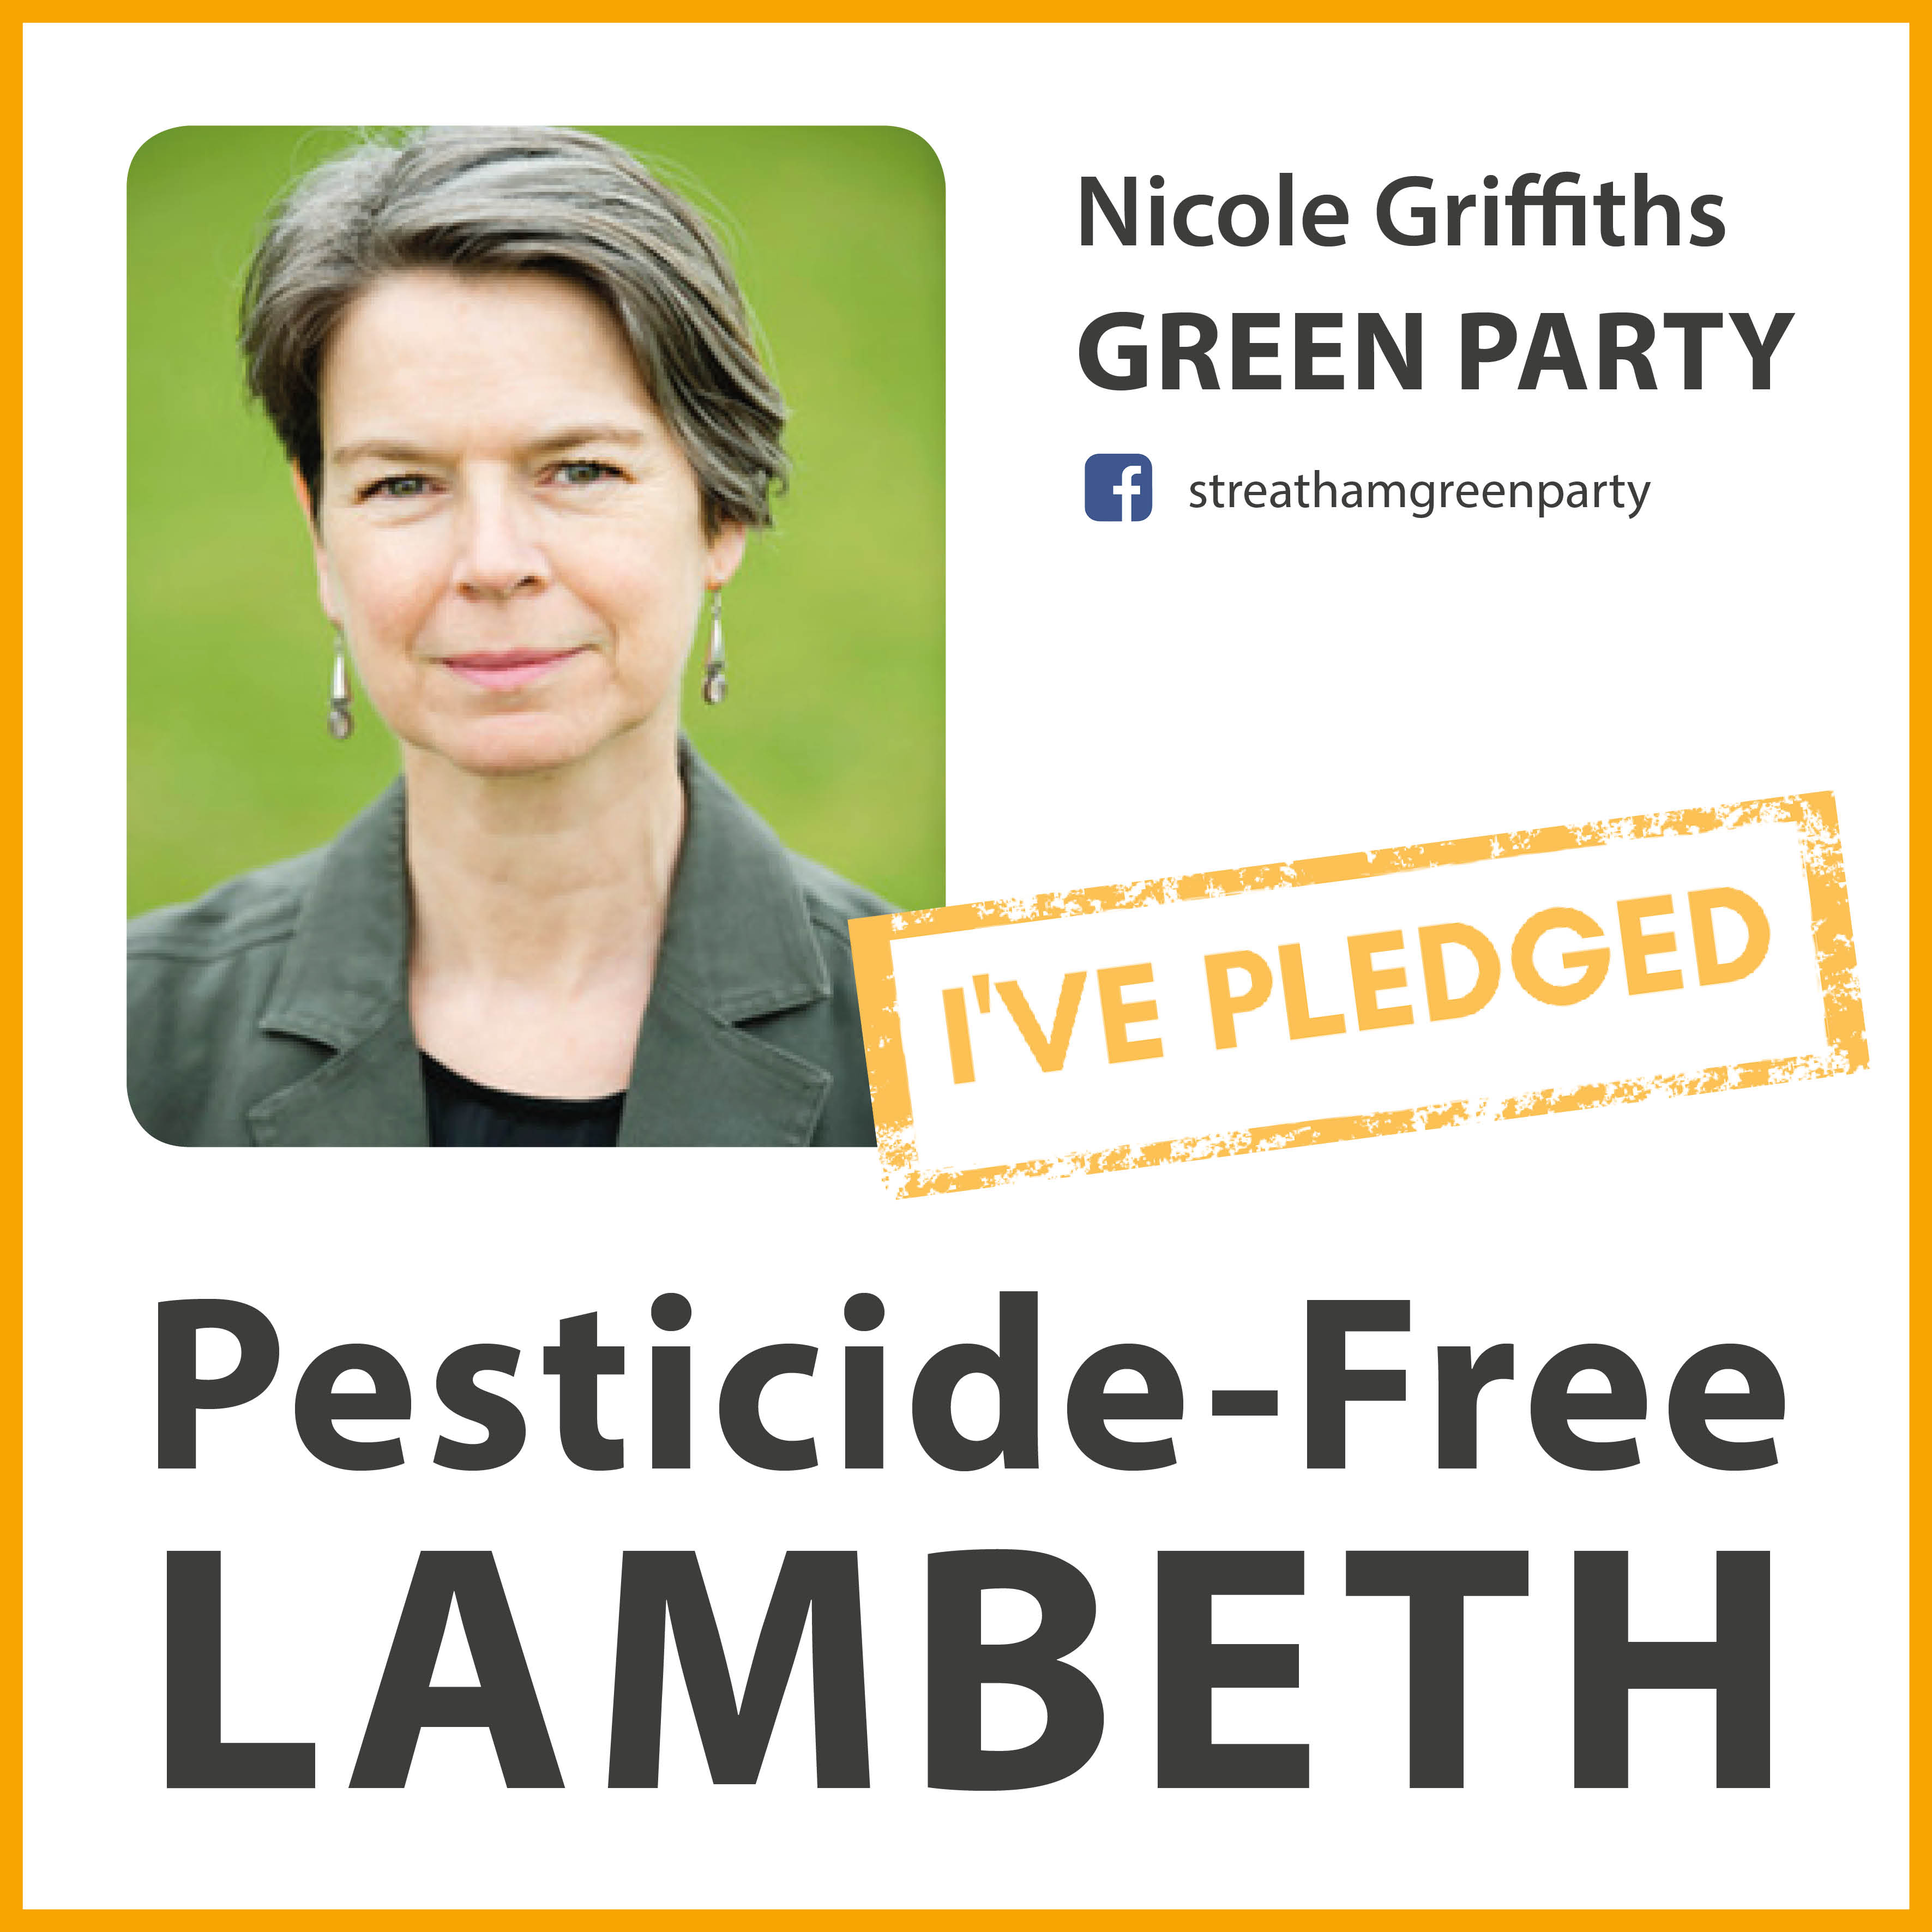 Nicole Griffiths has taken the pesticide-free pledge in Lambeth